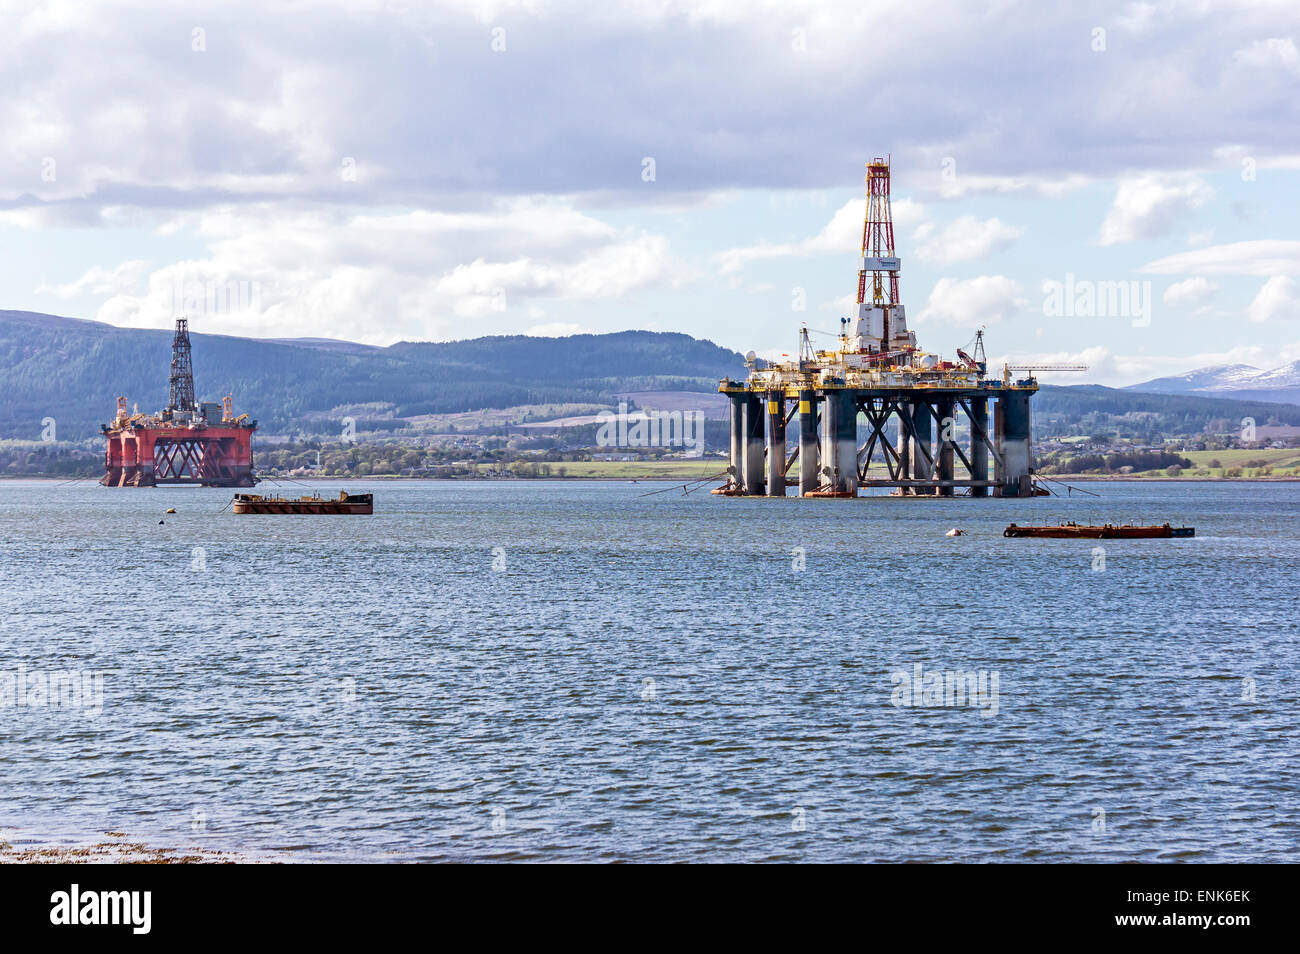 Transocean Sedco 712 (r) & Ocean Vanguard (l) anchored in the Cromarty Firth at the Black Isle Highland Scotland - Stock Image